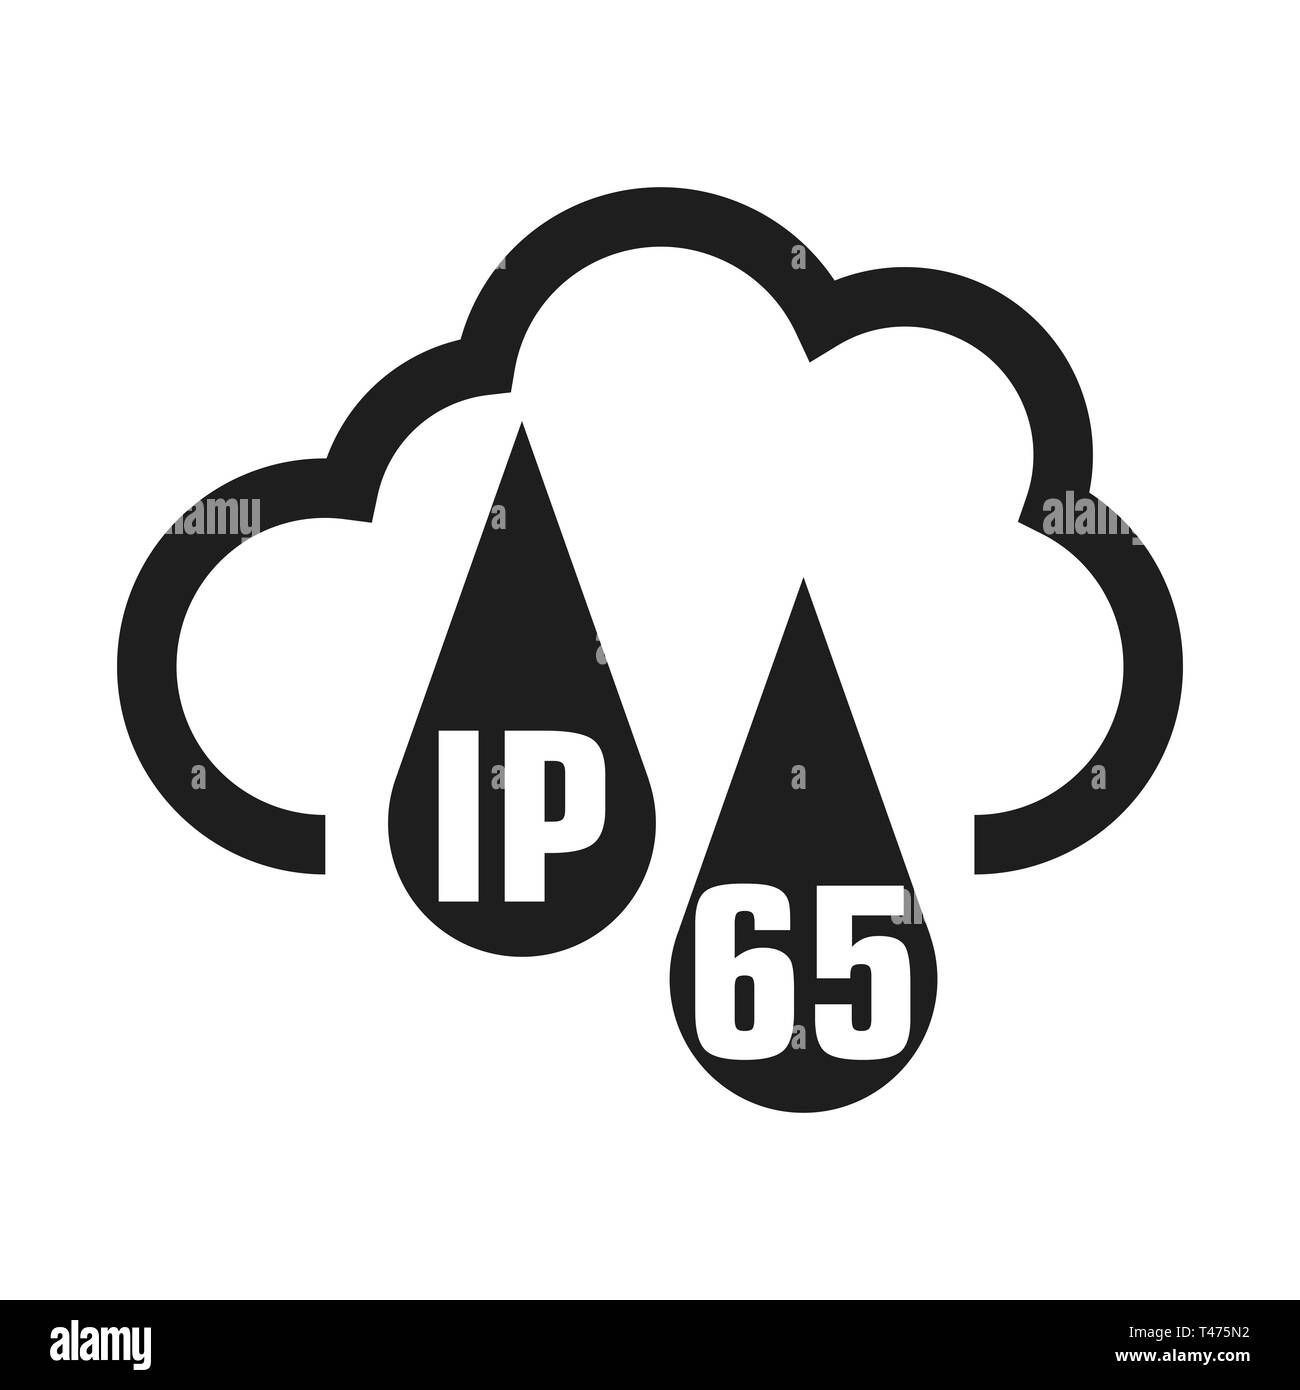 IP65 protection certificate standard icon. Water and dust or solids resistant protected symbol. Vector illustration. eps 10 - Stock Image